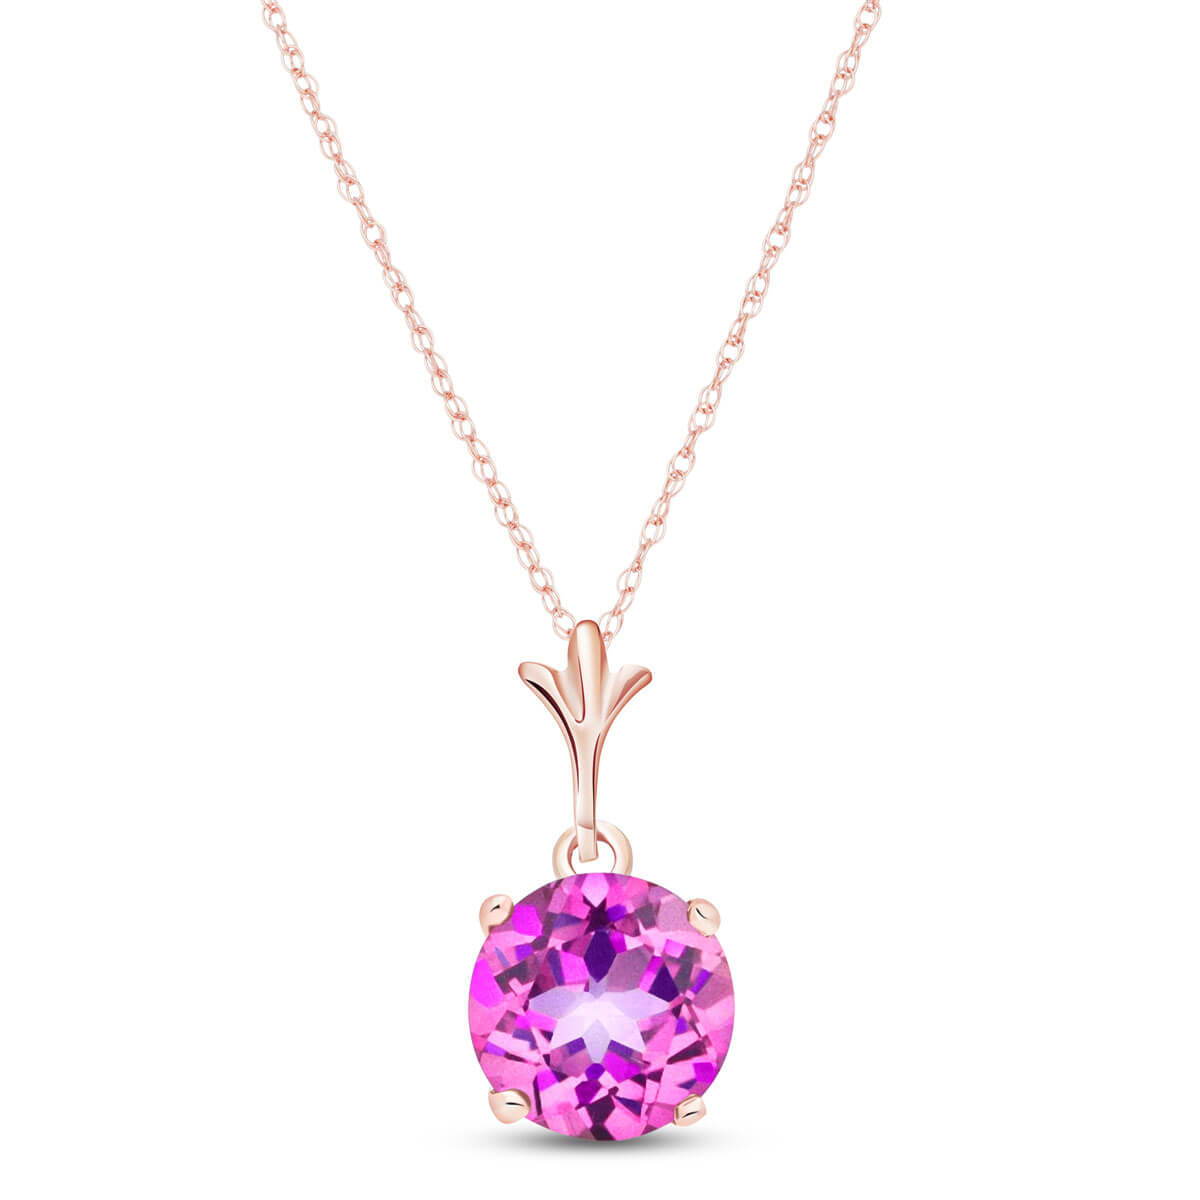 Pink Topaz Drop Pendant Necklace 1.15 ct in 9ct Rose Gold